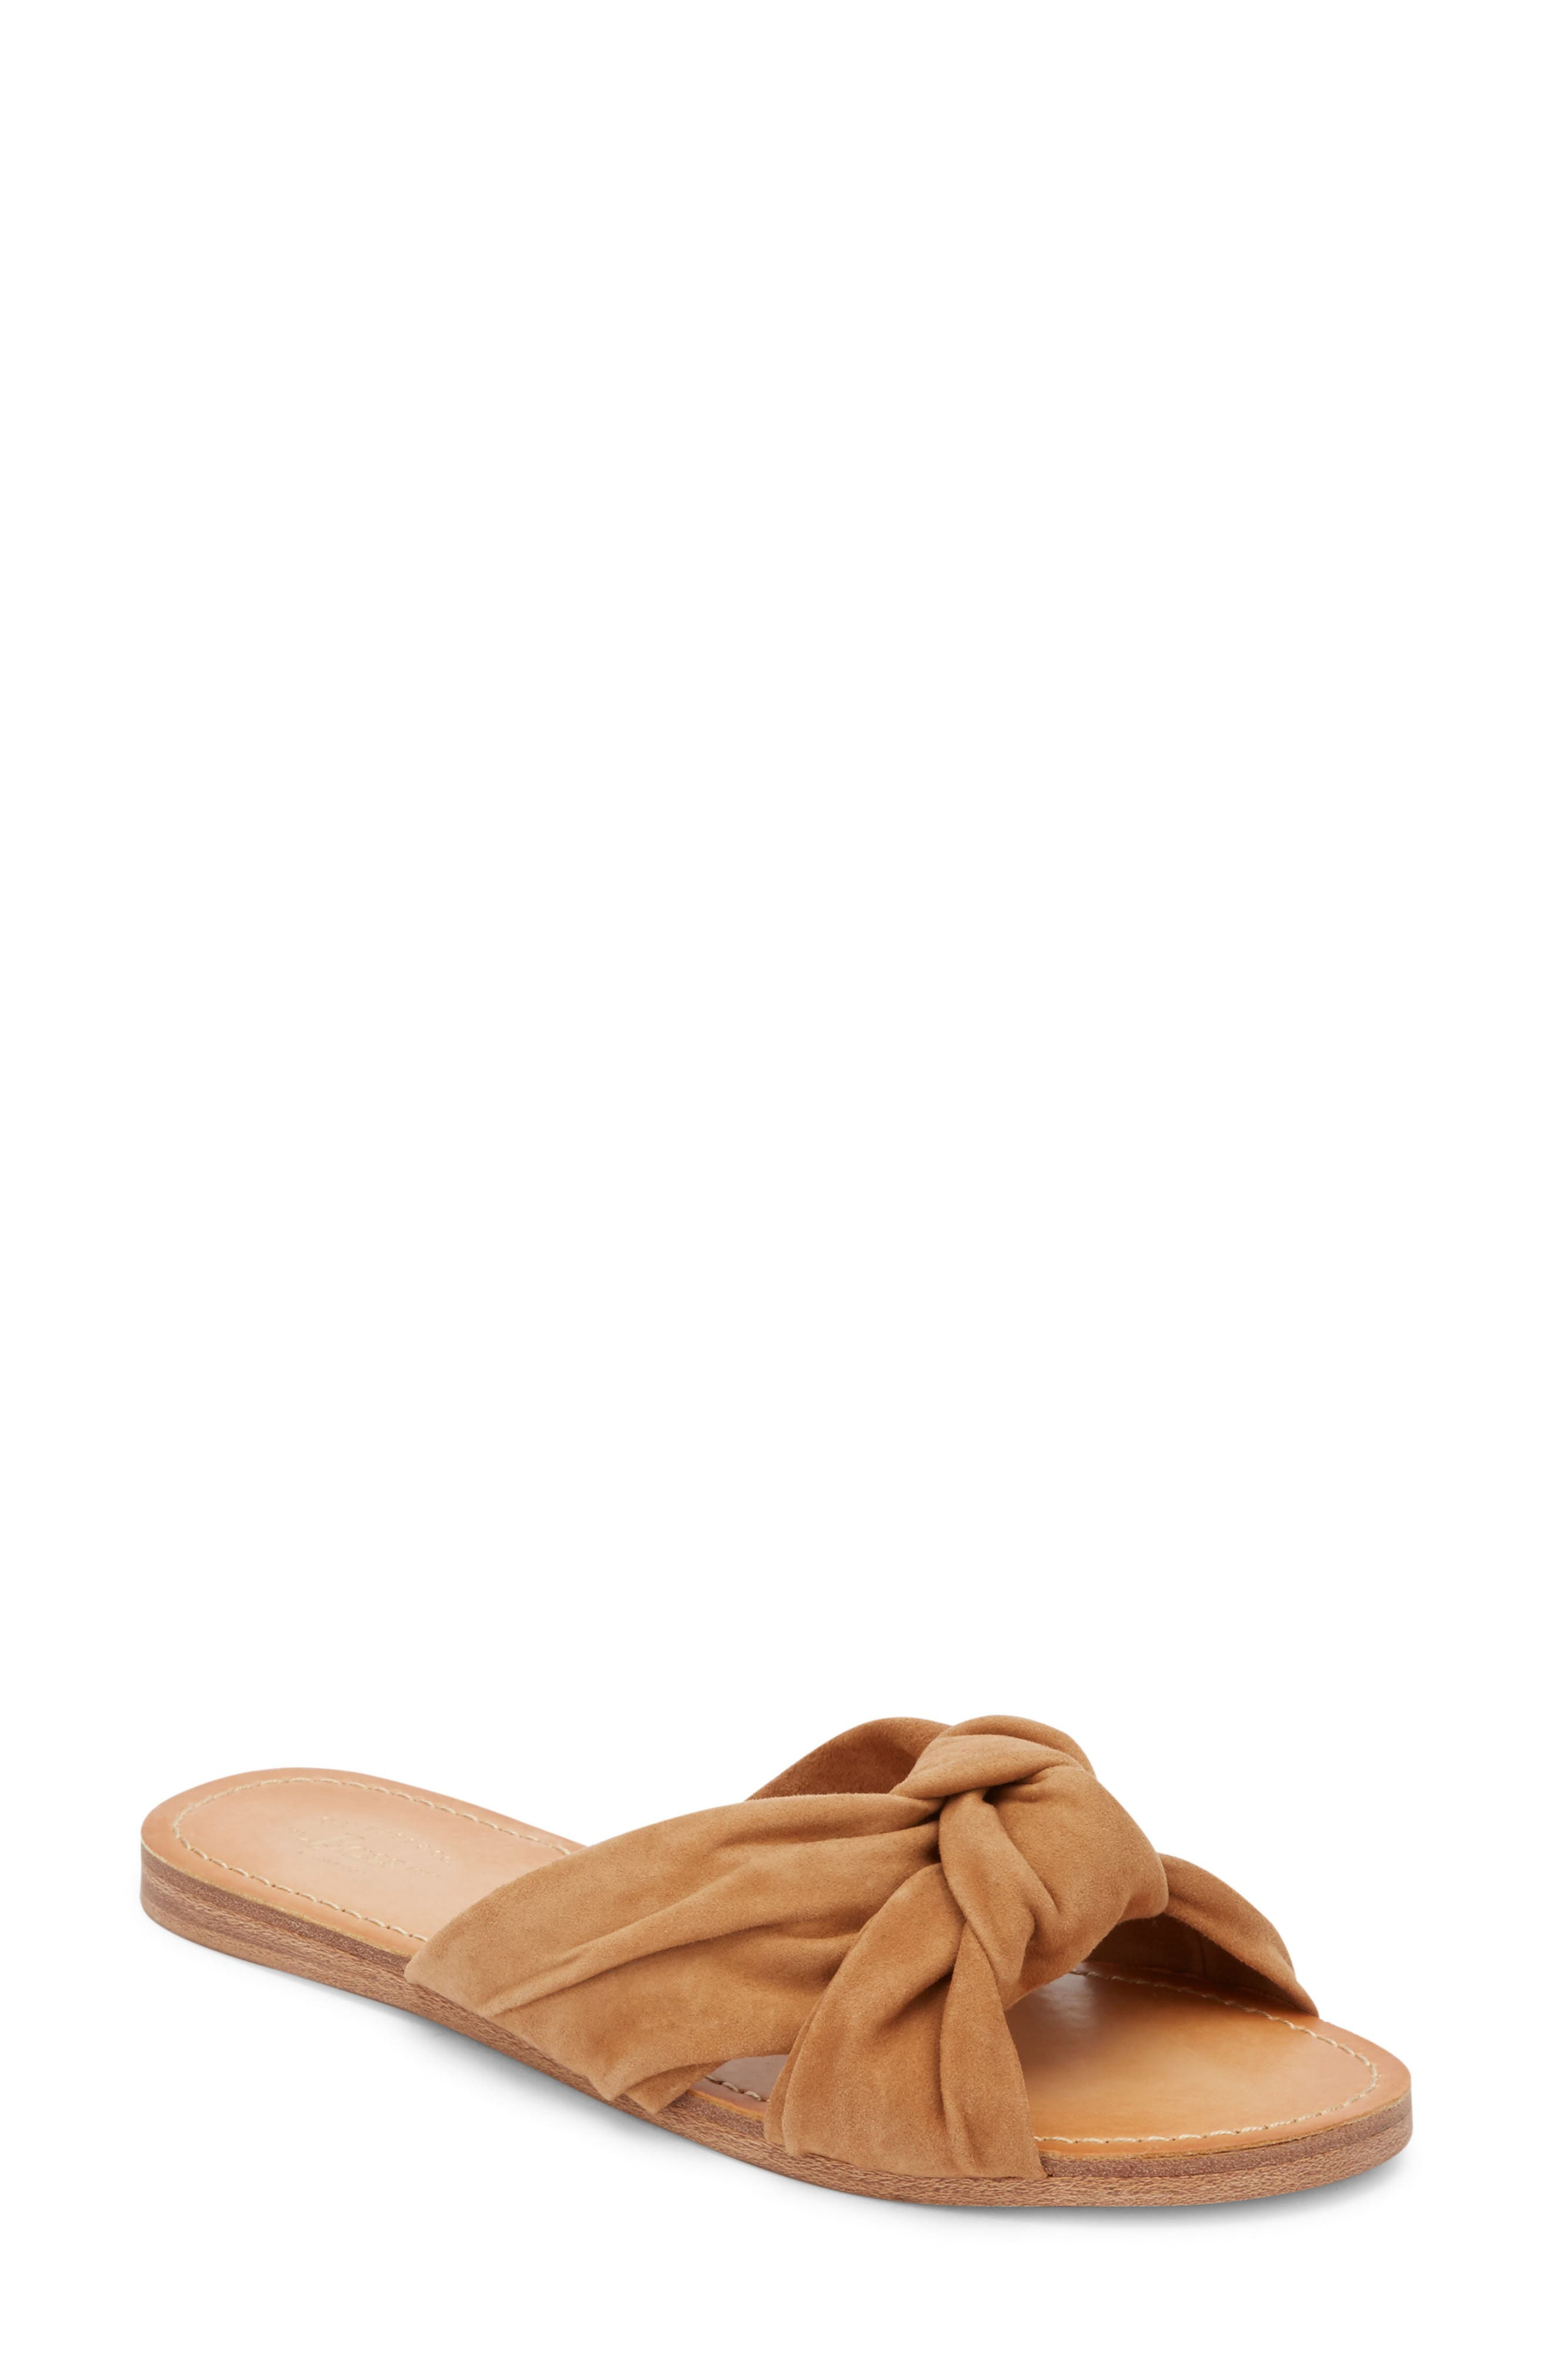 Sophie Knotted Bow Sandal,                             Main thumbnail 1, color,                             TAN SUEDE